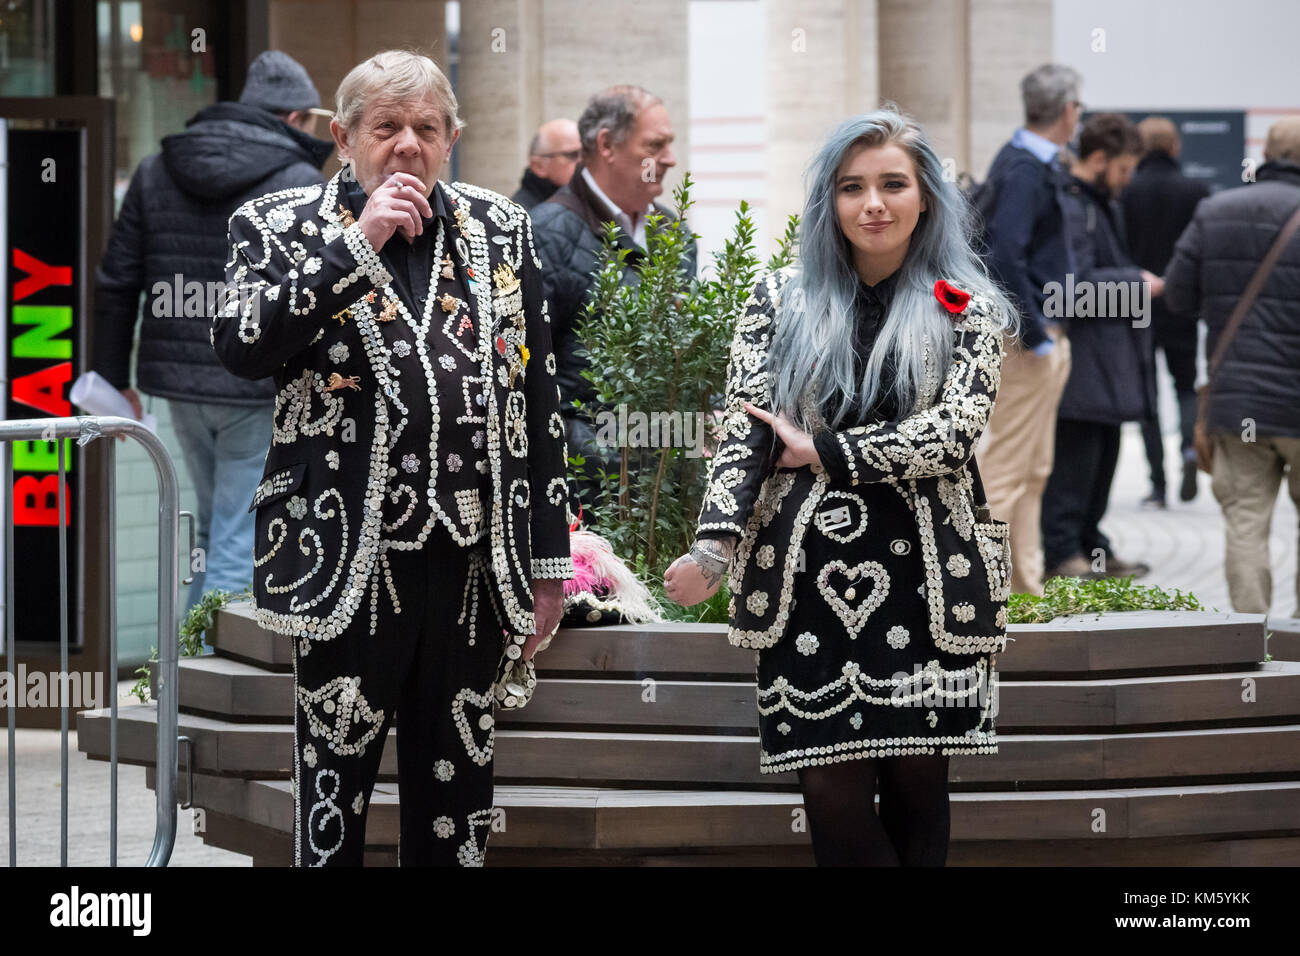 London, UK. 5th Dec, 2017. Pearly Kings and Queens, also known as Pearlies, take a break whilst attending the annual - Stock Image